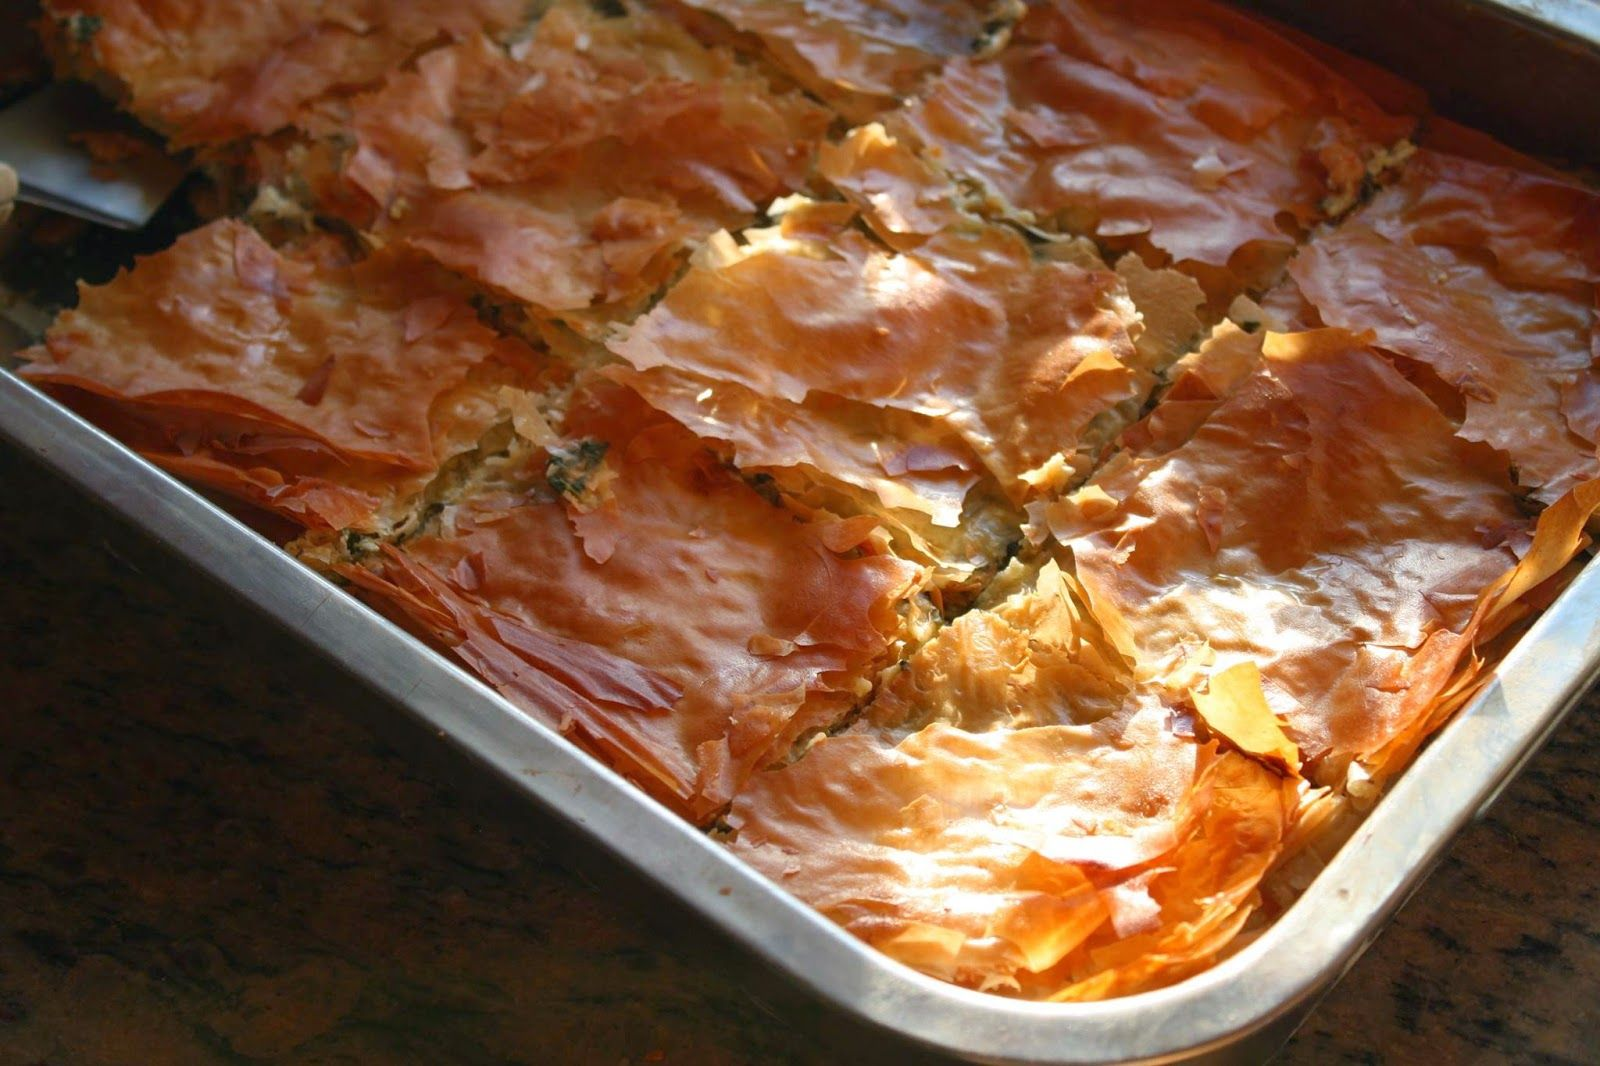 Spanakopita with Garlic Olive Oil